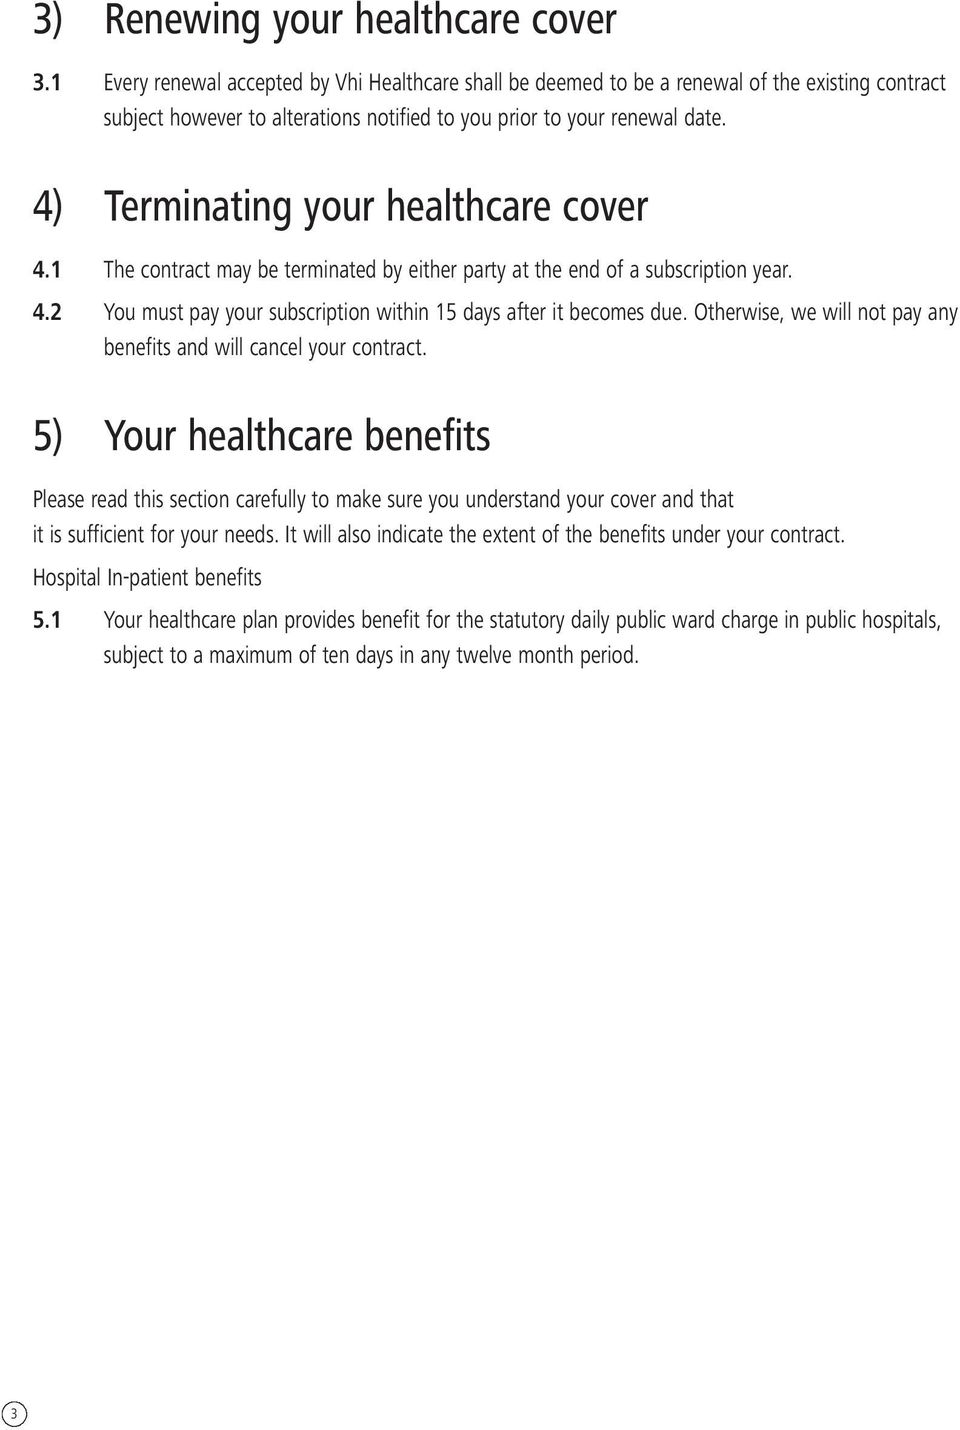 4) Terminating your healthcare cover 4.1 The contract may be terminated by either party at the end of a subscription year. 4.2 You must pay your subscription within 15 days after it becomes due.